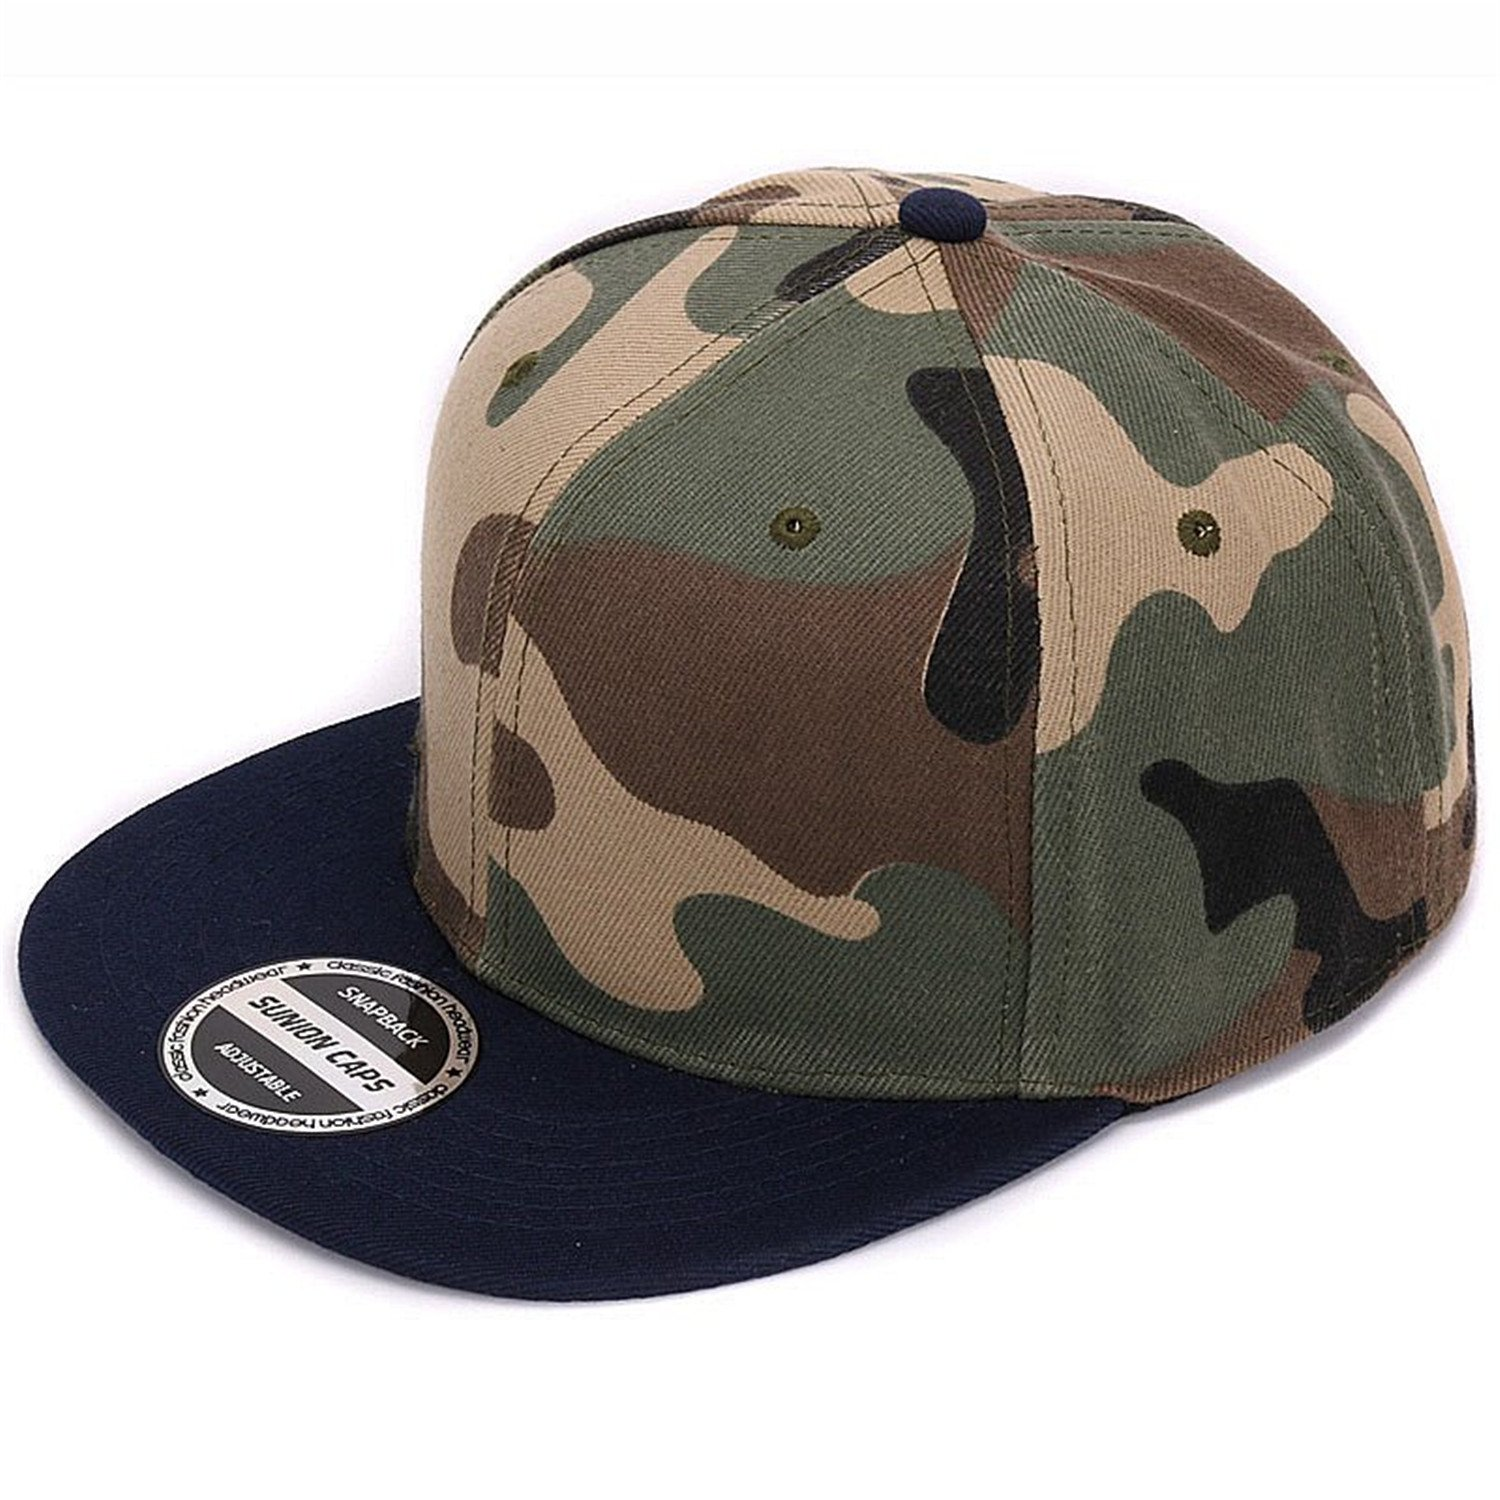 Amazon.com  Camouflage snapback polyester cap blank flat camo baseball cap  with no embroidery mens cap and hat for men and women Navy camo  Health ... a39b5590c73